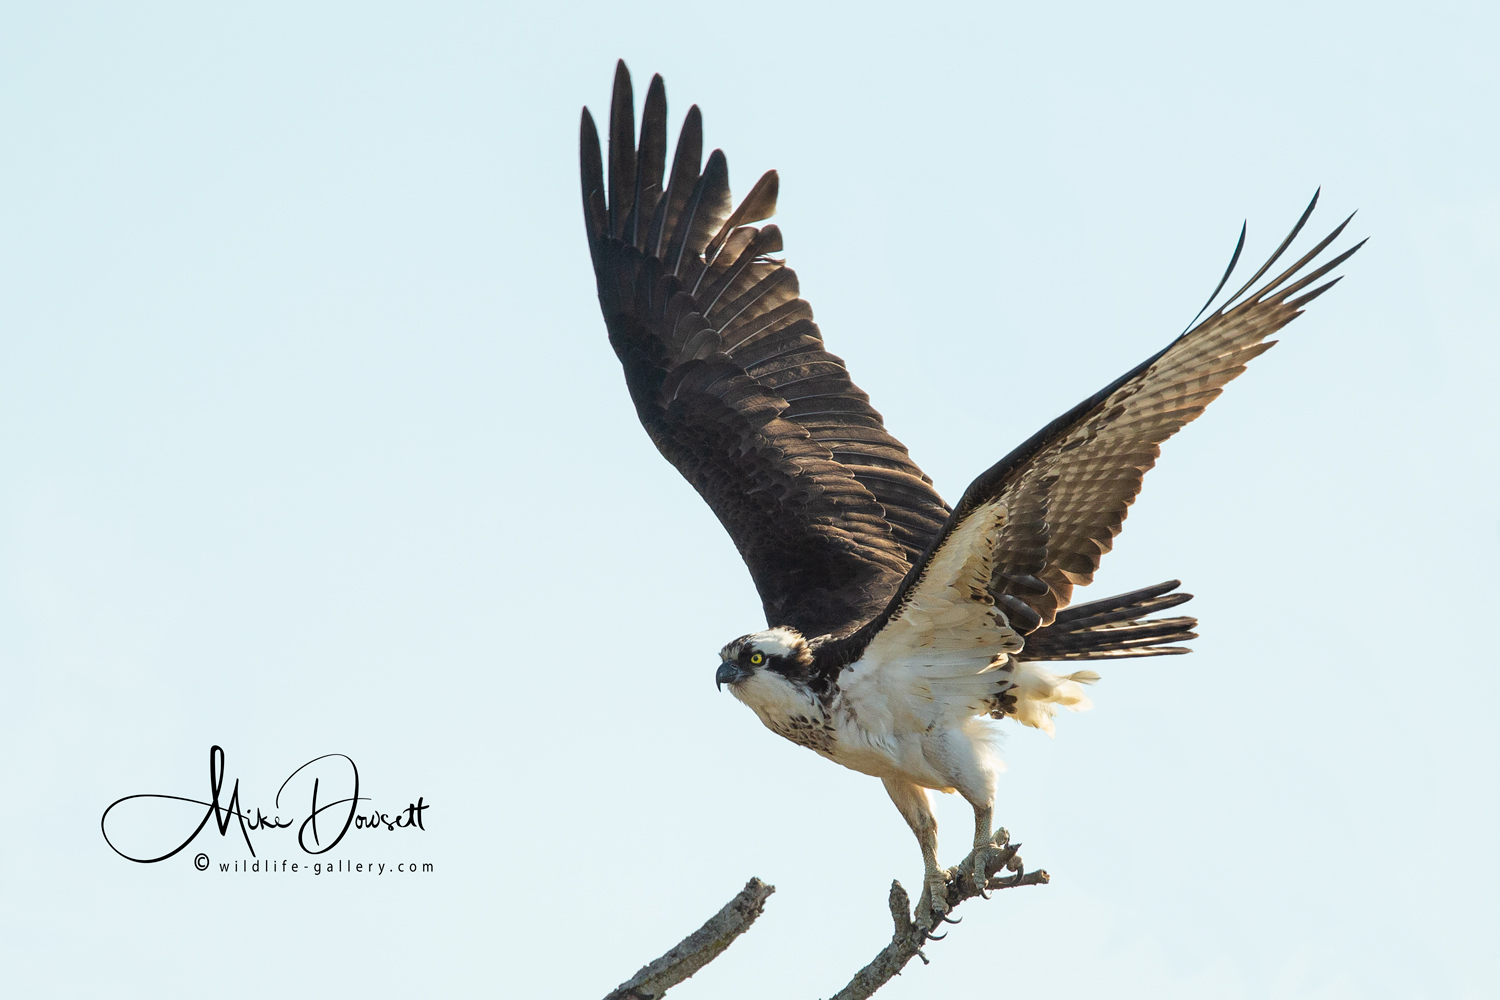 The female Osprey roosted in a tree close to the nest before returning to sit with her partner.